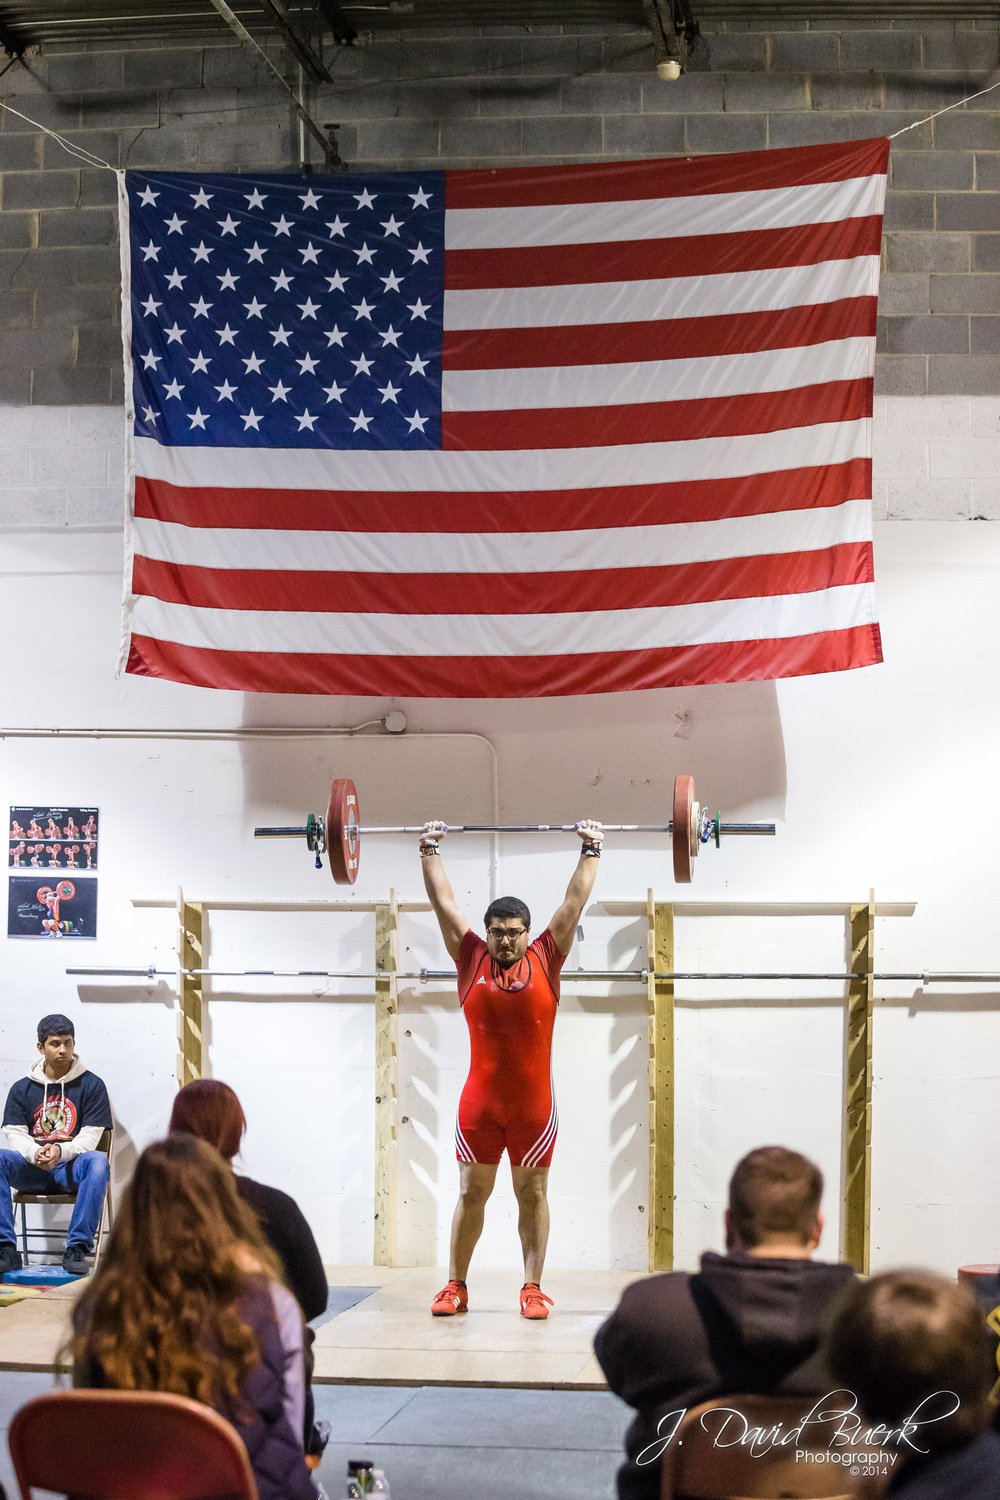 Imran competing in the 2014 NOVA Open at NOVA Strength and Conditioning.